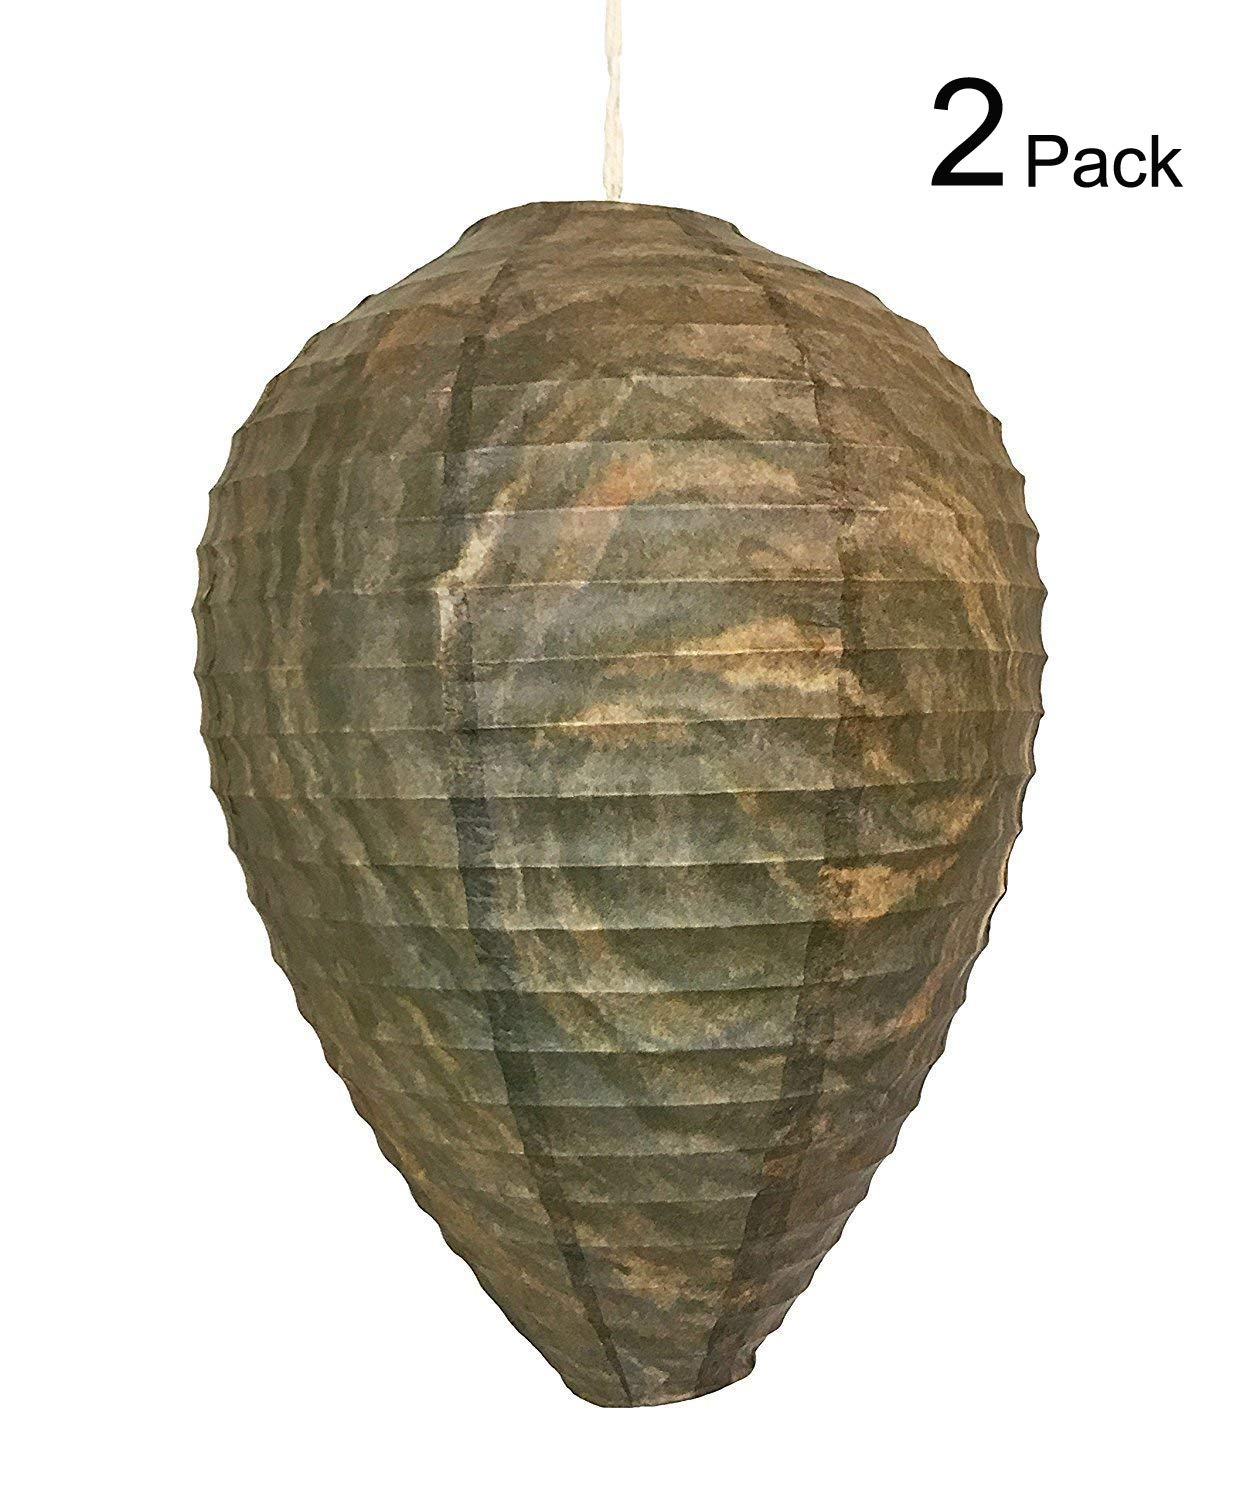 9 Inch Wasp Nest Decoy, LANREN Eco Friendly Hanging Get Lost Wasp Nest Bee Free Wasp Deterrent - 2 Packs Lansen-CA